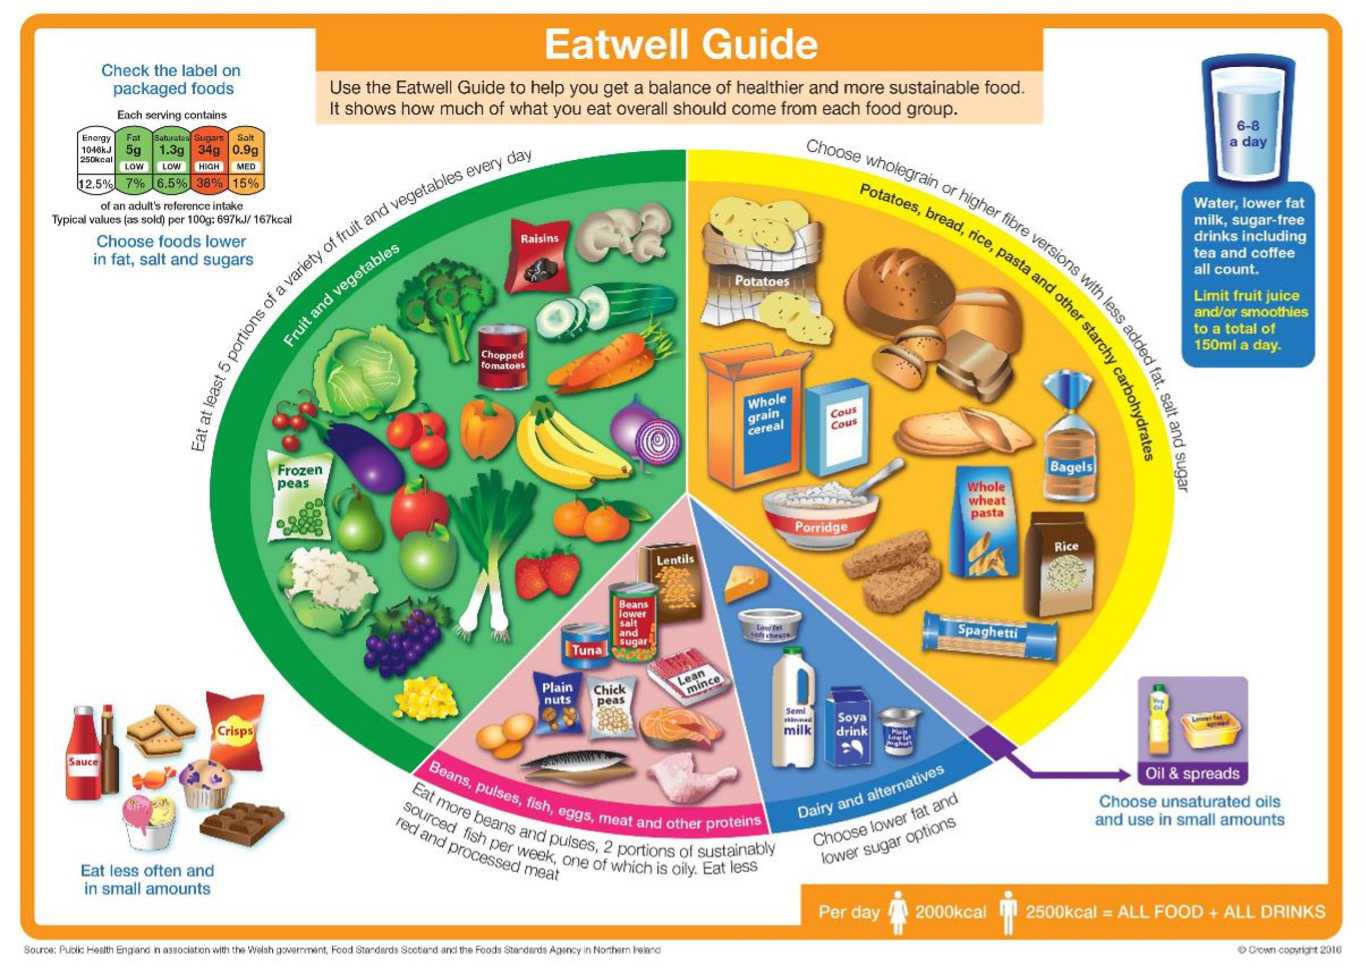 The NHS promotes the Eatwell plate